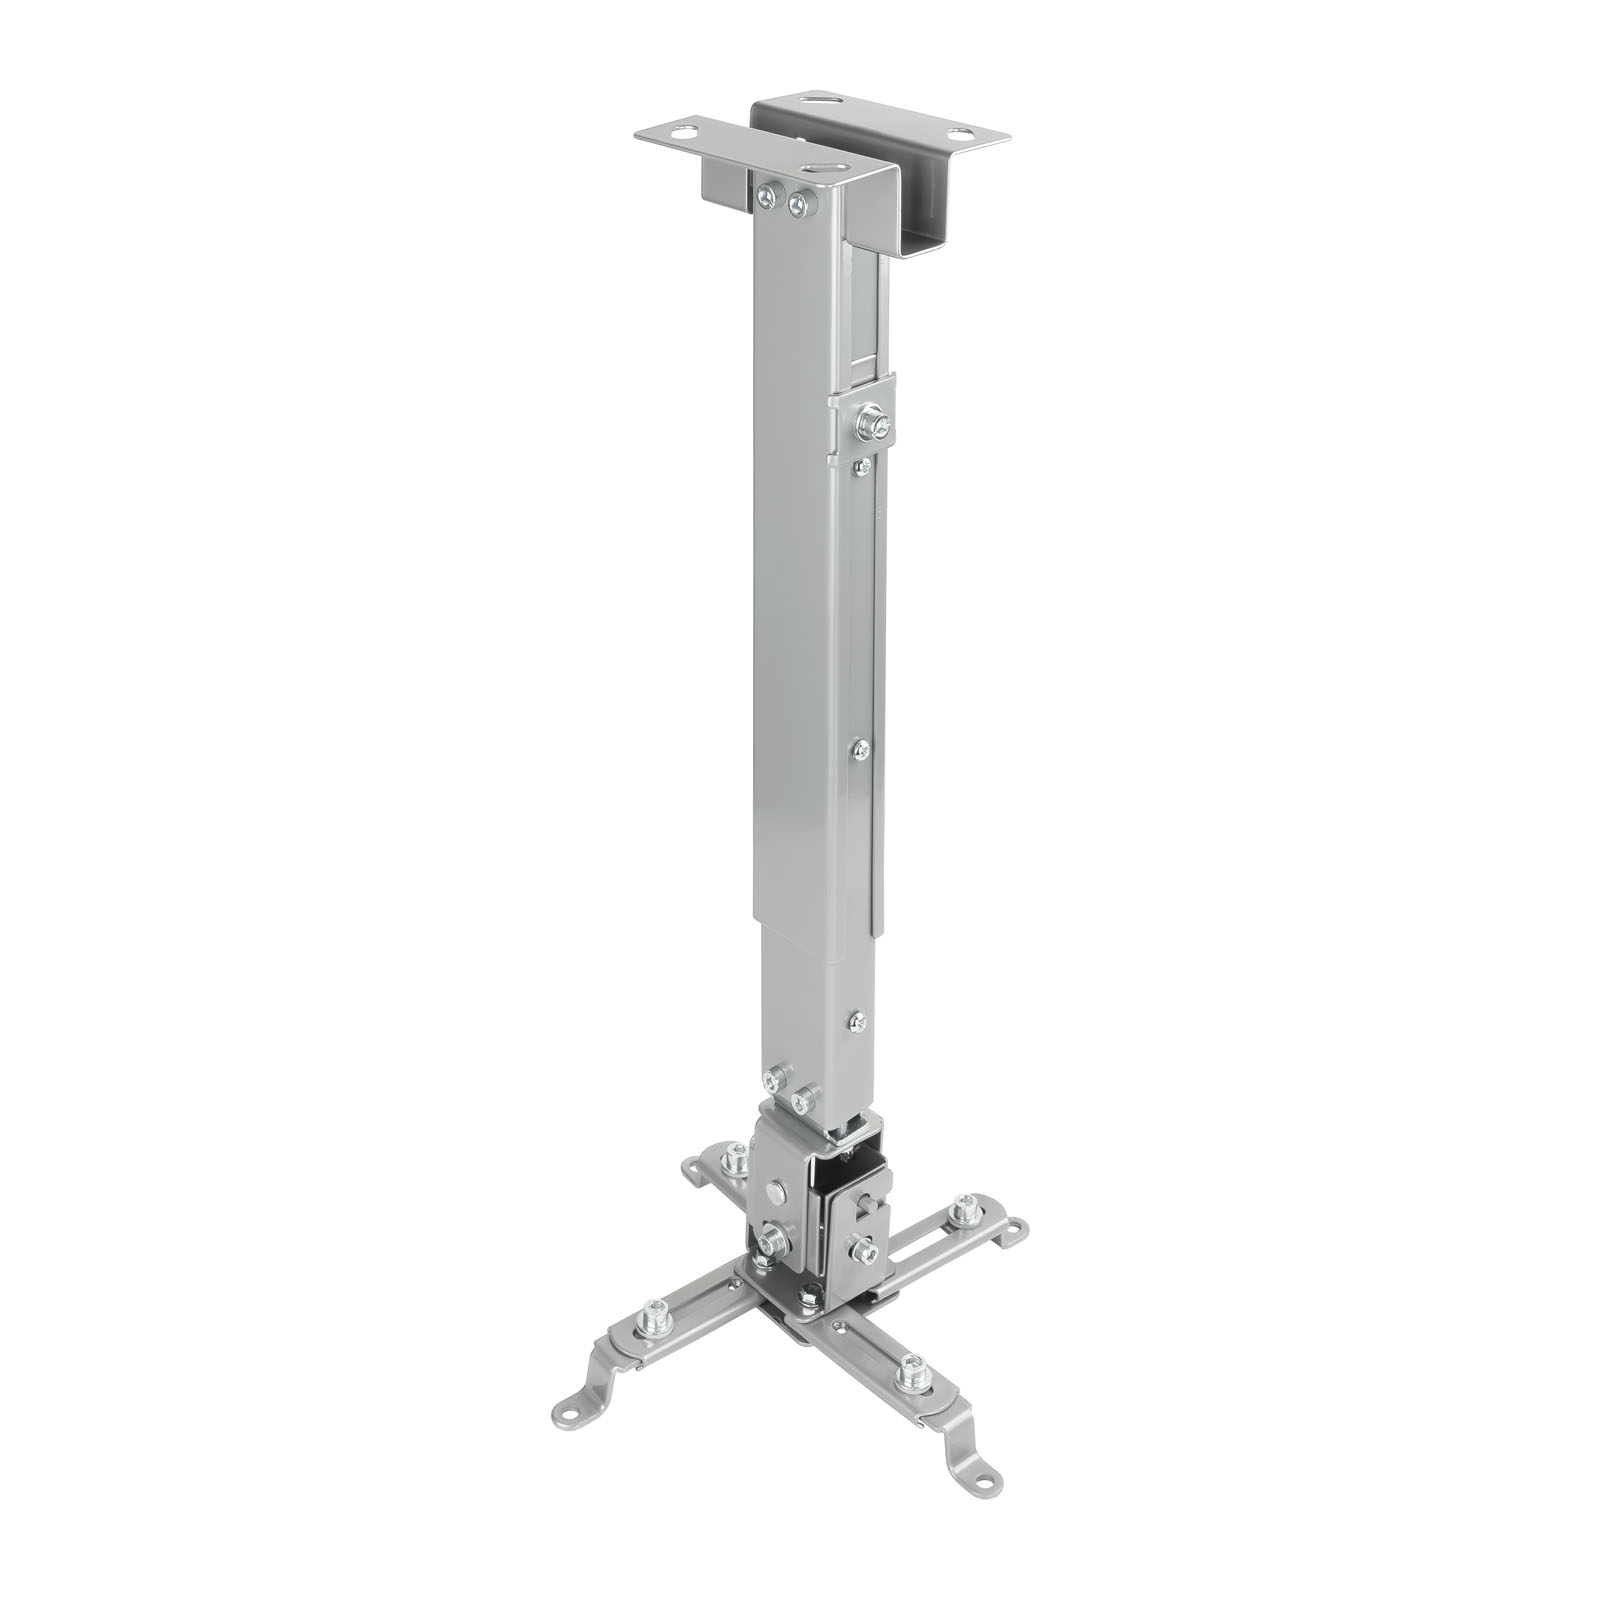 SOPORTE PROYECTOR PJ2012T-S INCLINABLE TECHO PLATA